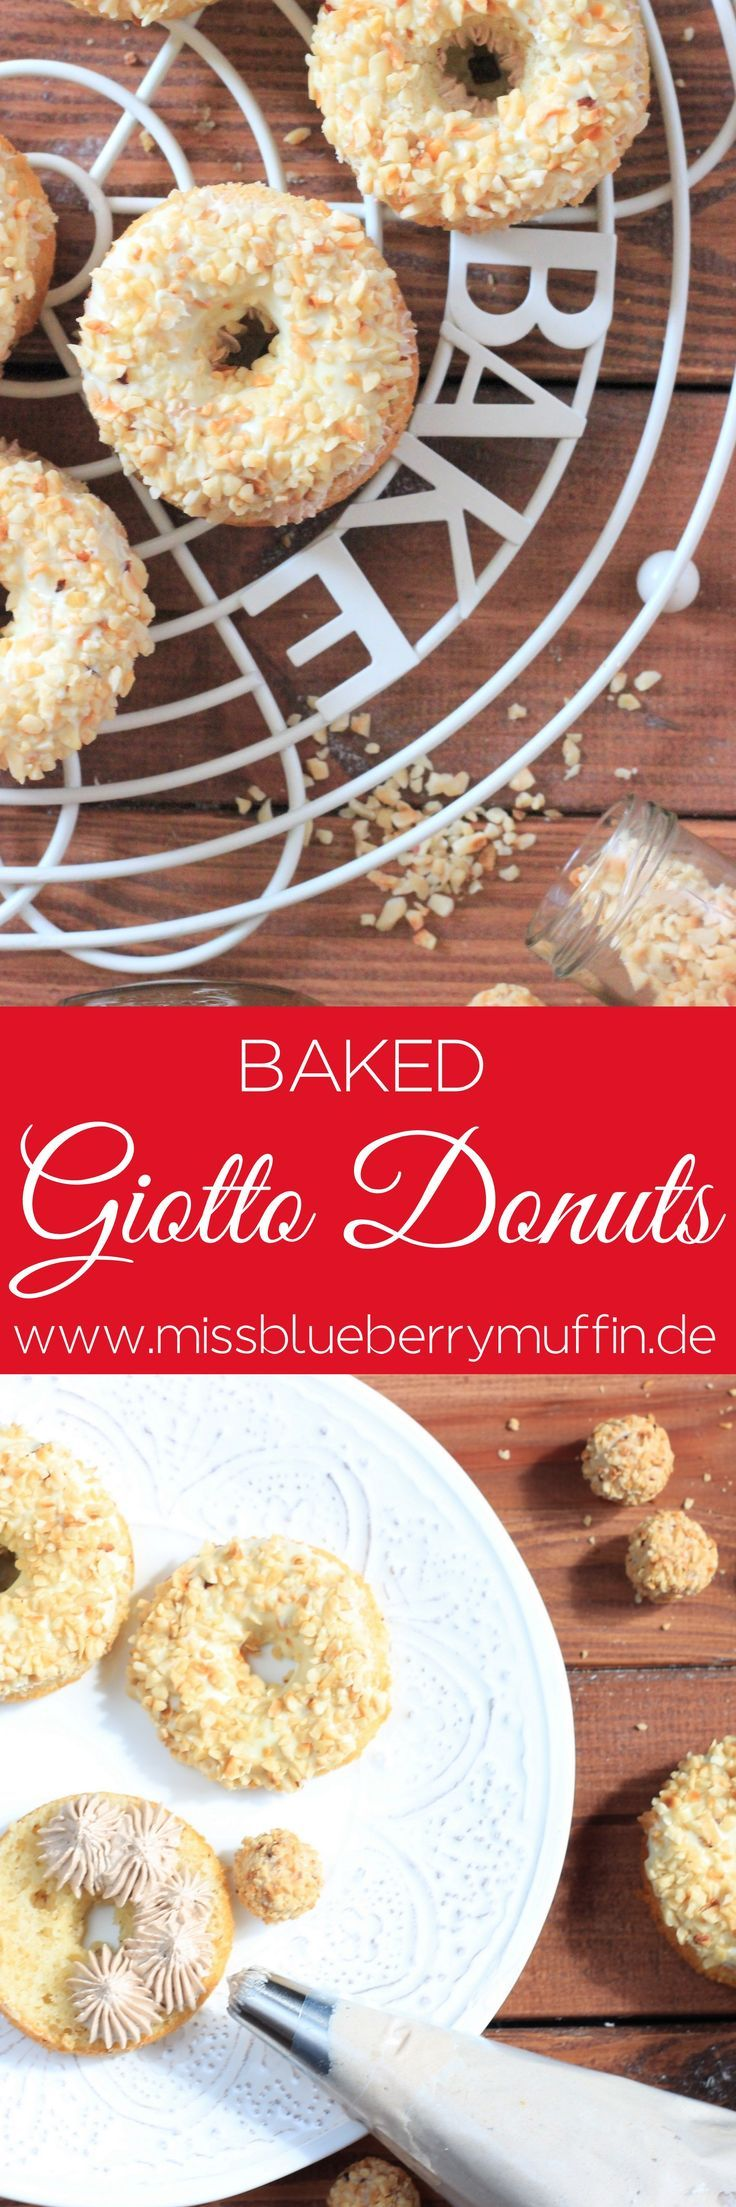 rezept f r giotto donuts aus dem backofen baked giotto donuts recipe ich liebe. Black Bedroom Furniture Sets. Home Design Ideas